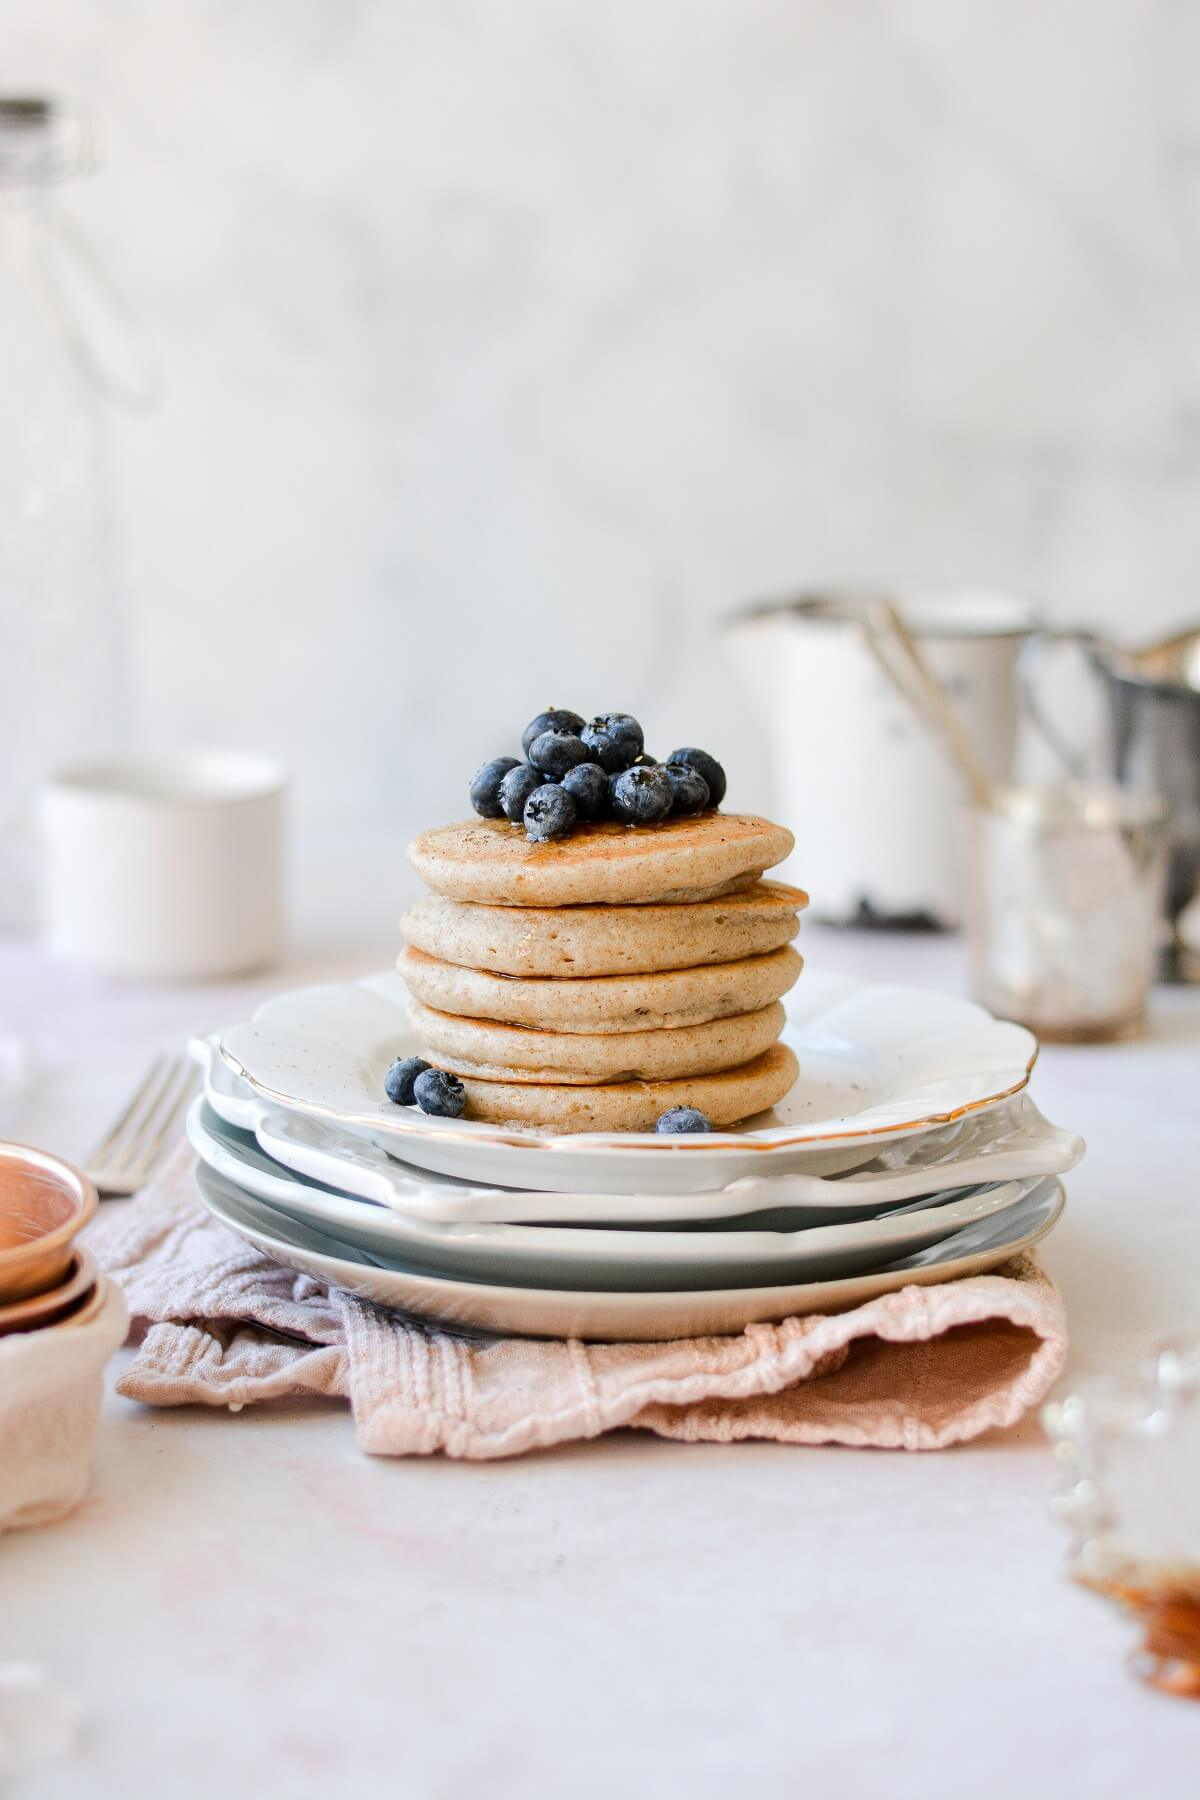 A stack of pancakes topped with blueberries.